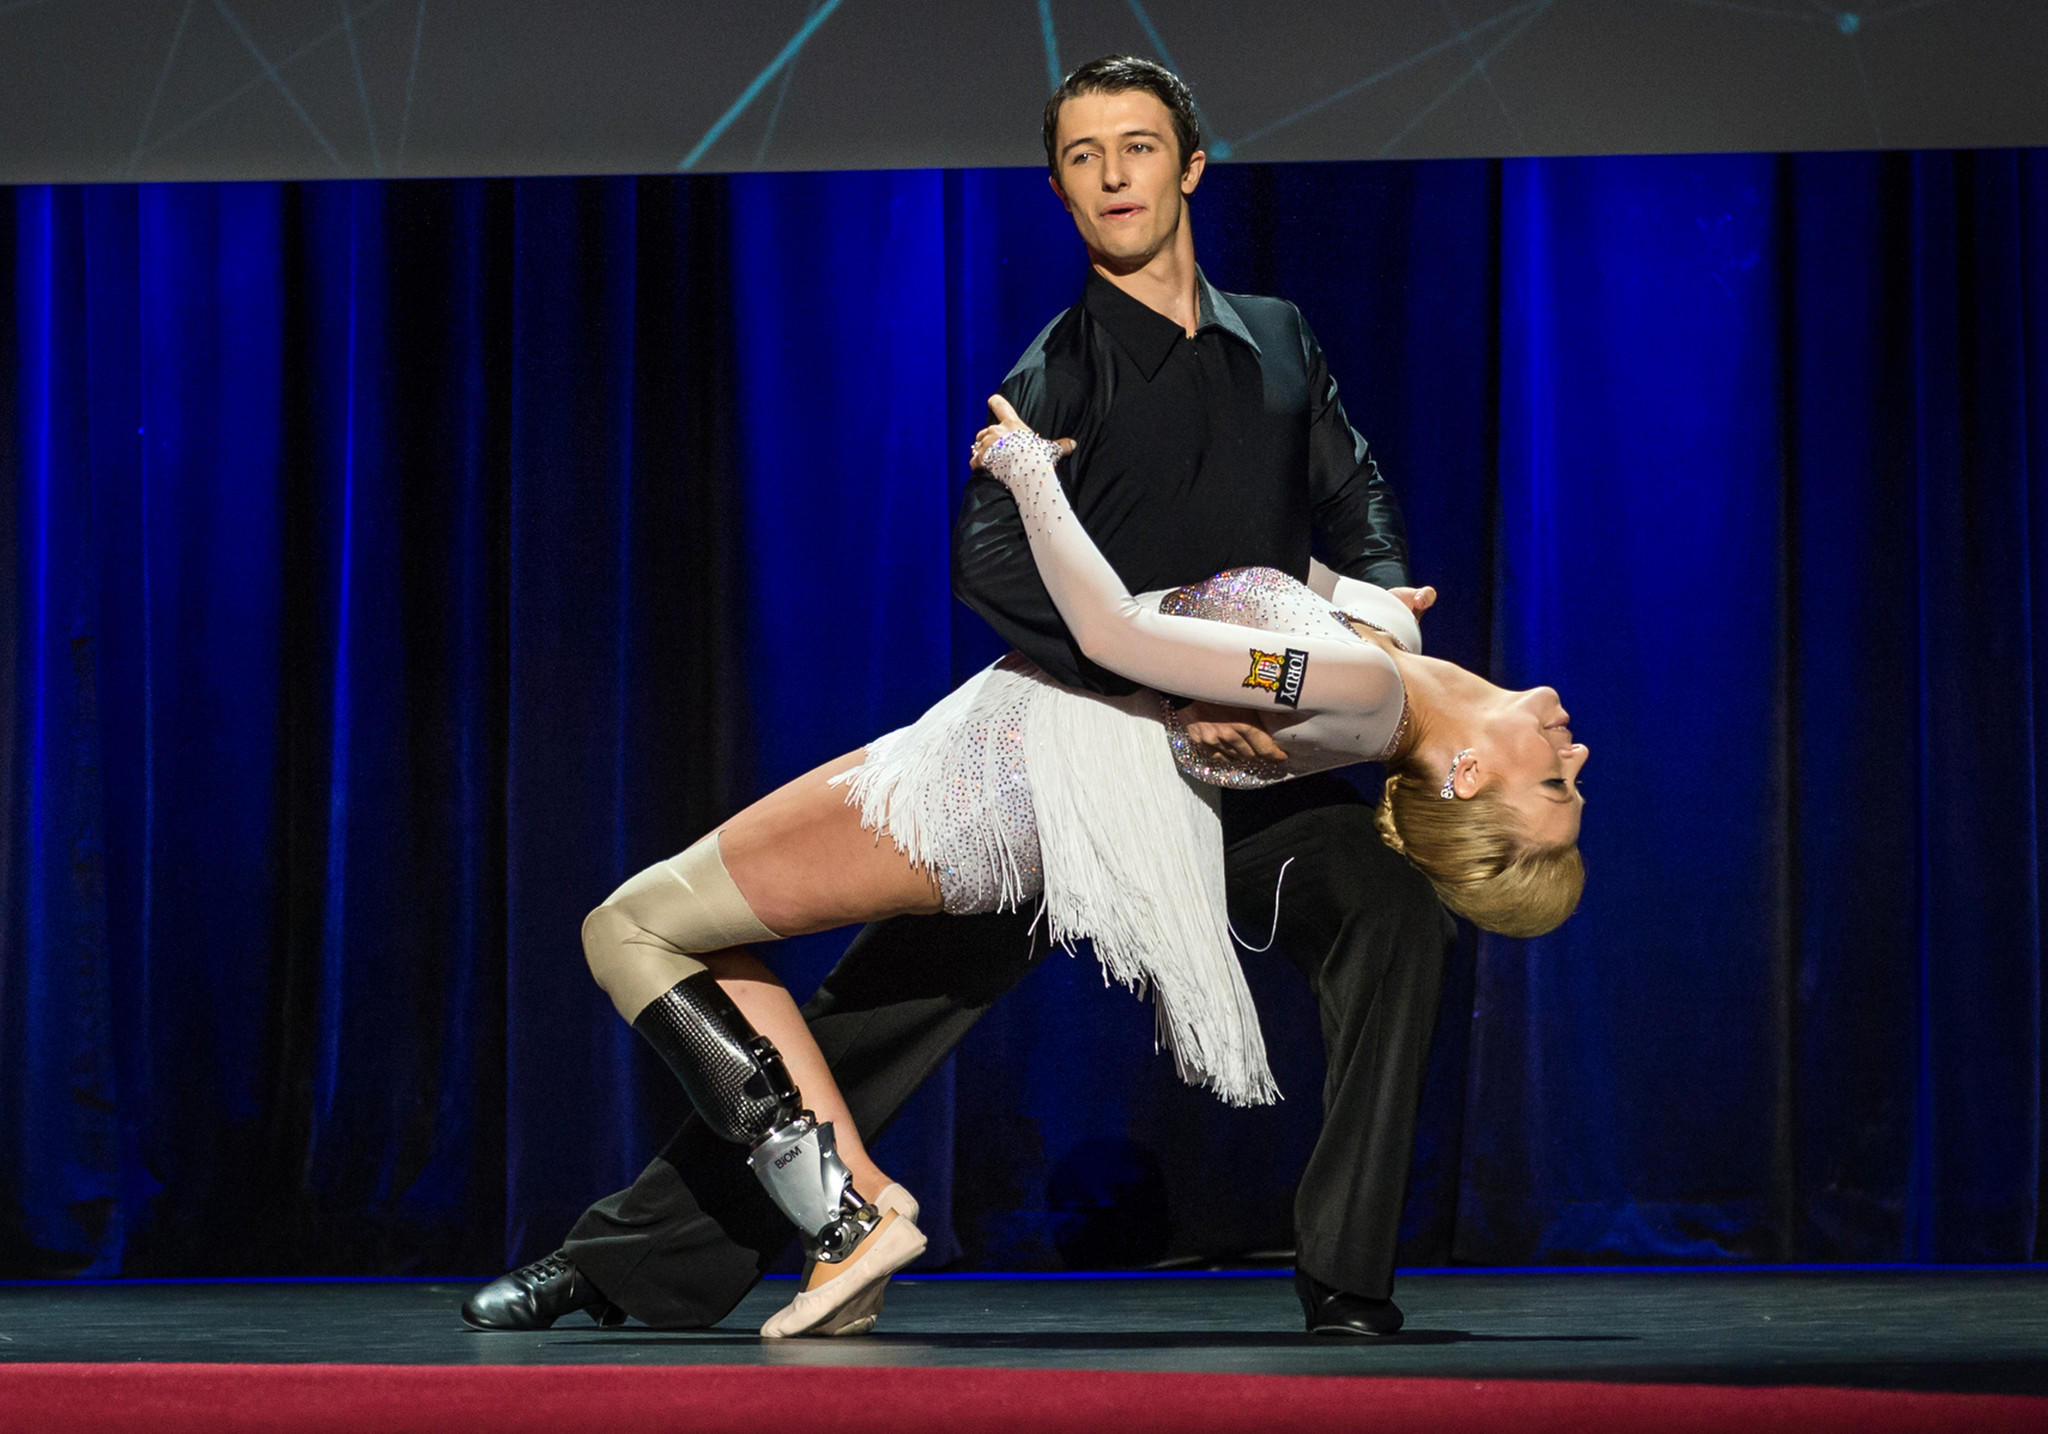 """Survivor Adrianne Haslet-Davis, performing publicly in Vancouver for the first time after losing part of her leg in the Boston Marathon bombing, walked off """"Meet the Press"""" over a dispute about naming the brothers accused in the bombing."""